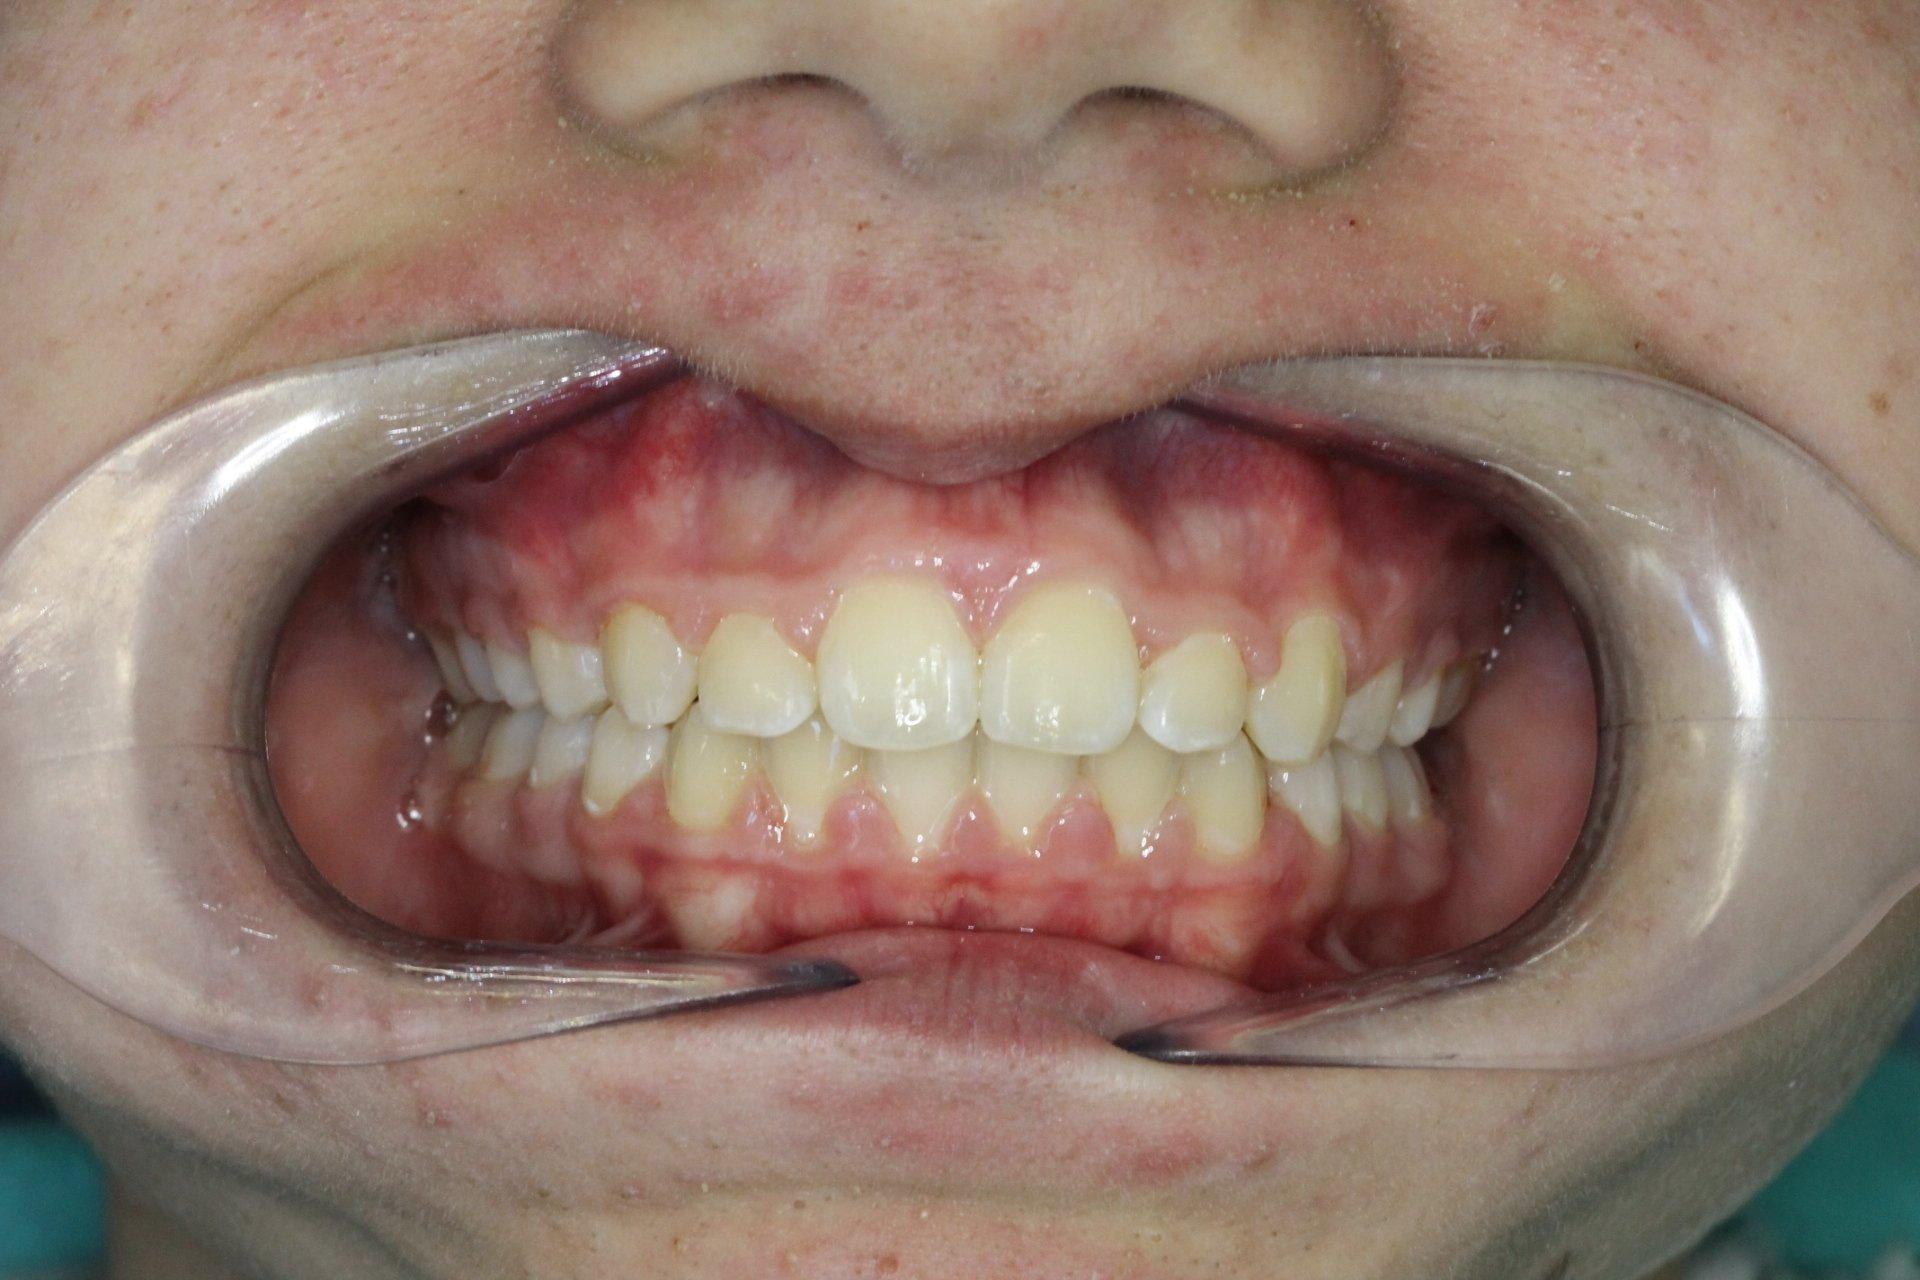 After treatment, open bite closed